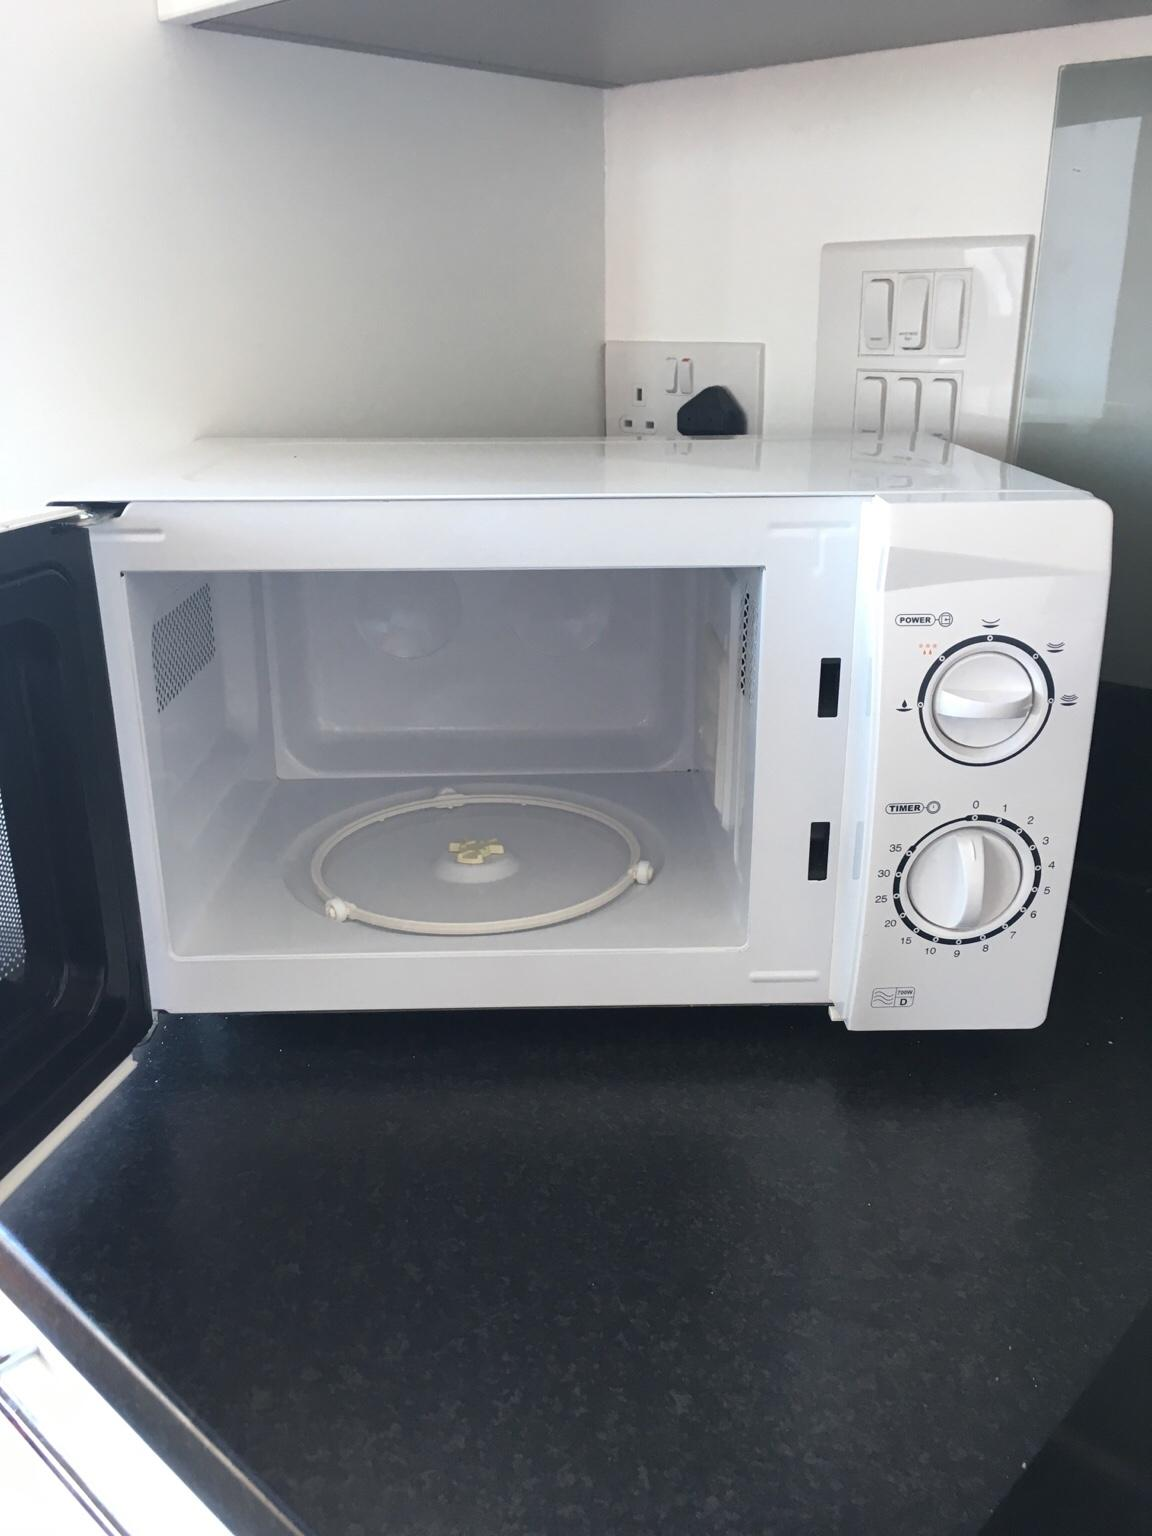 Daewoo Kor6l15 Manual Microwave Oven 20